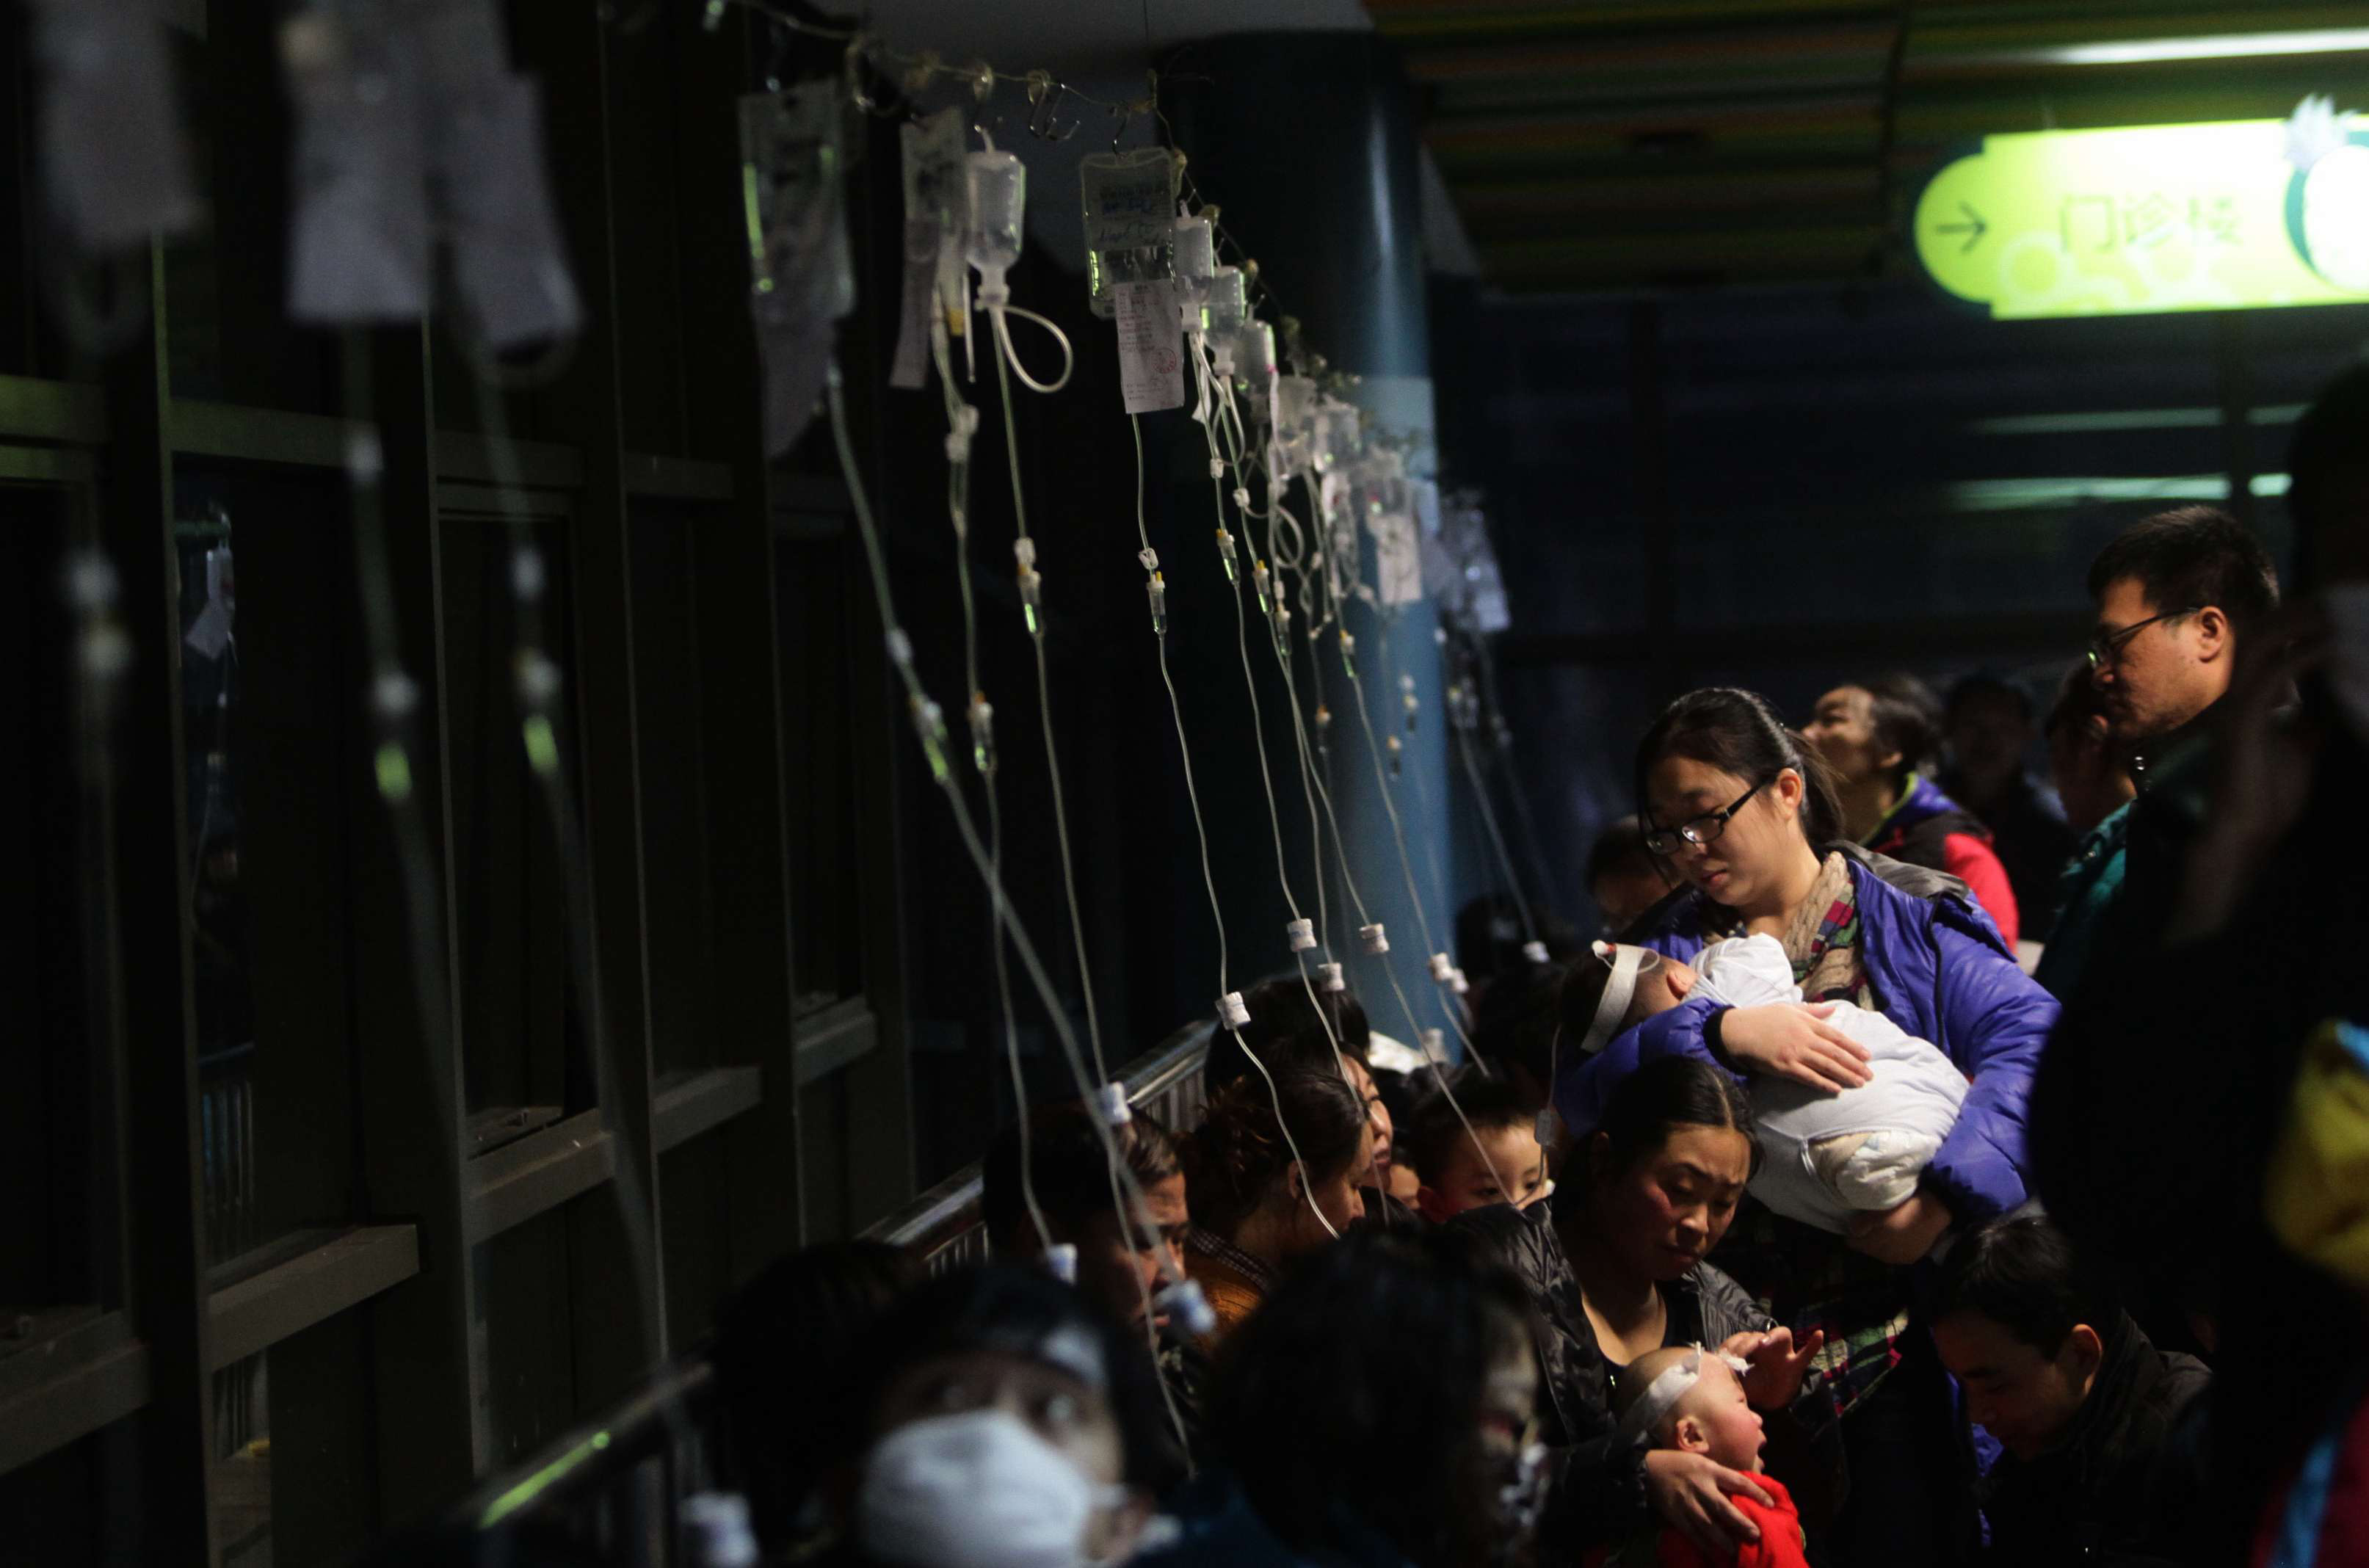 Beijing hospitals saw a spike in respiratory cases Monday following a weekend of off-the-charts pollution. Here, a row of intravenous drips is seen as parents take their kids to hospital for flu treatment Sunday.